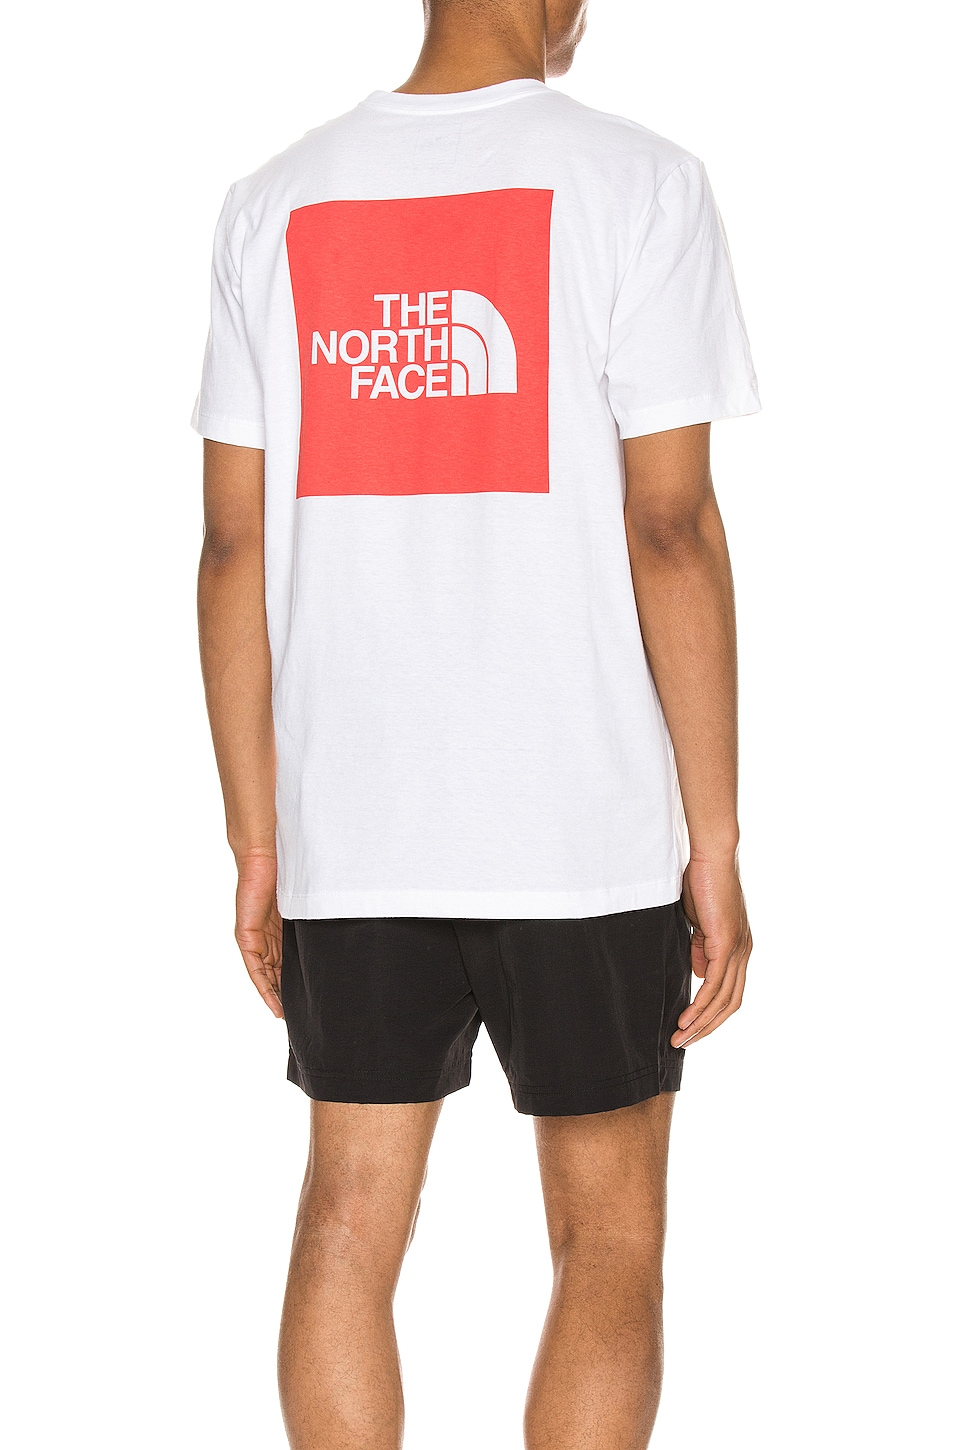 The North Face S/S Red Box Heavyweight Tee en TNF White & TNF Red